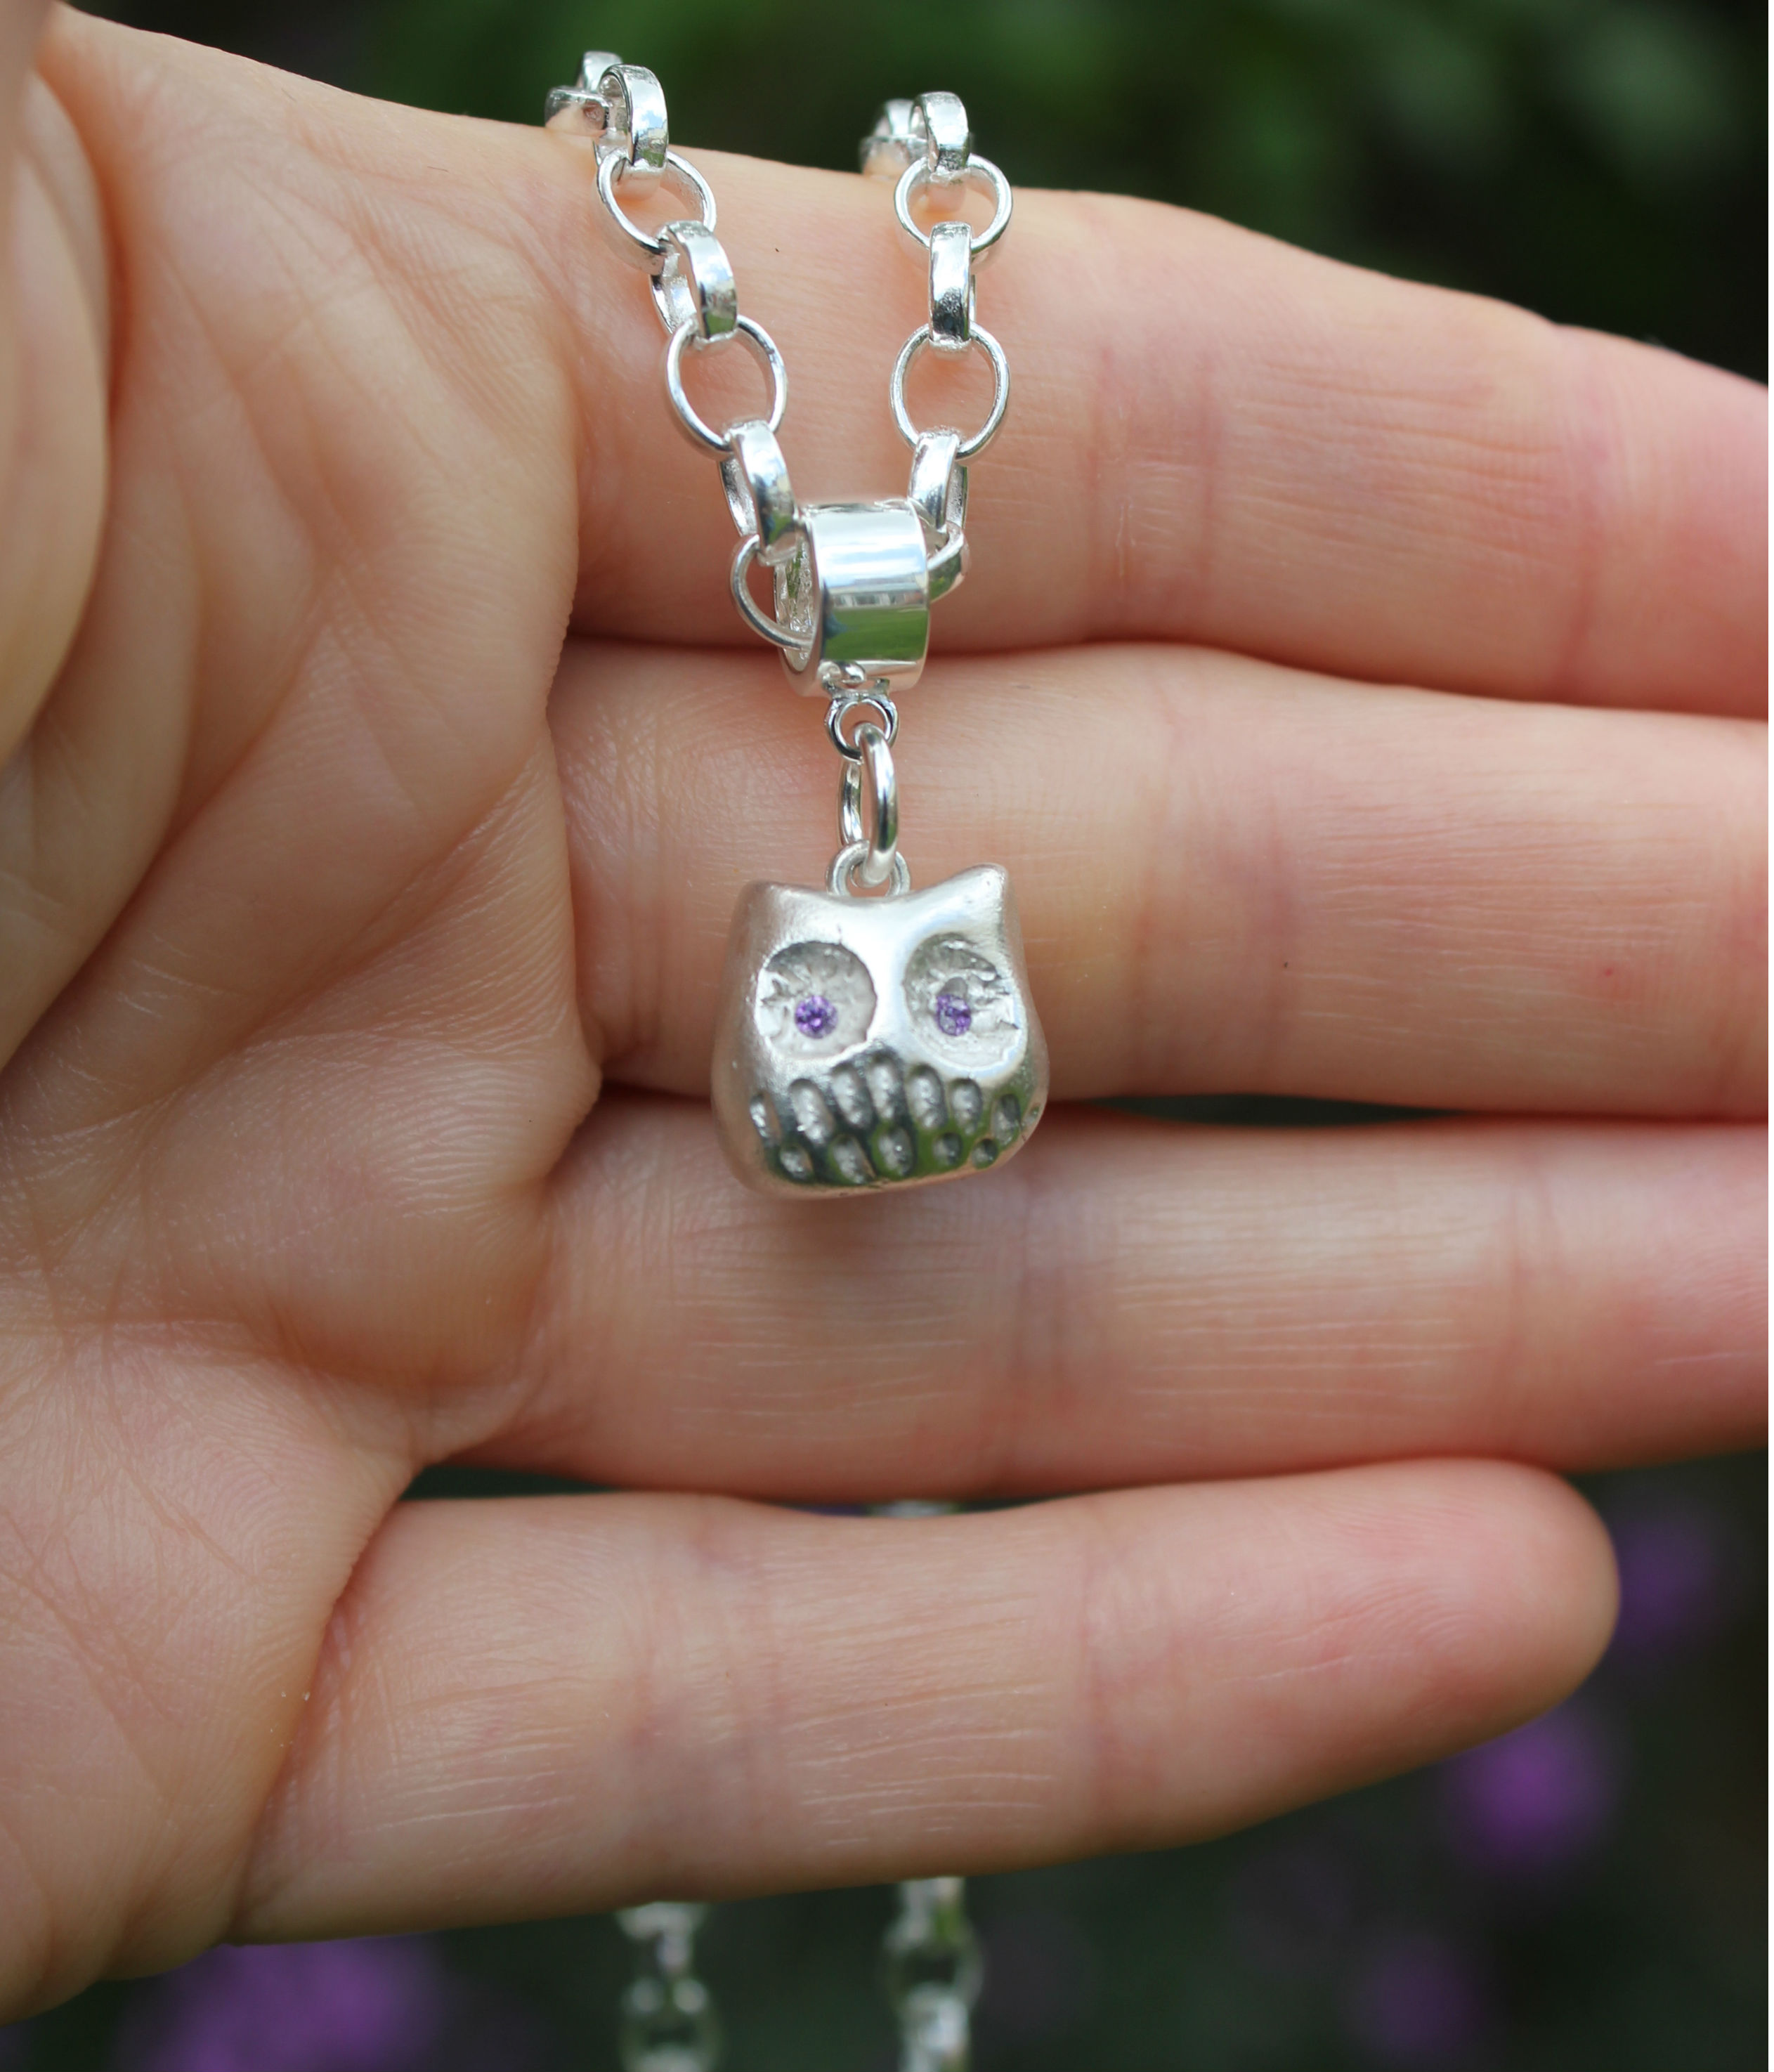 sculpted owl charm in hand